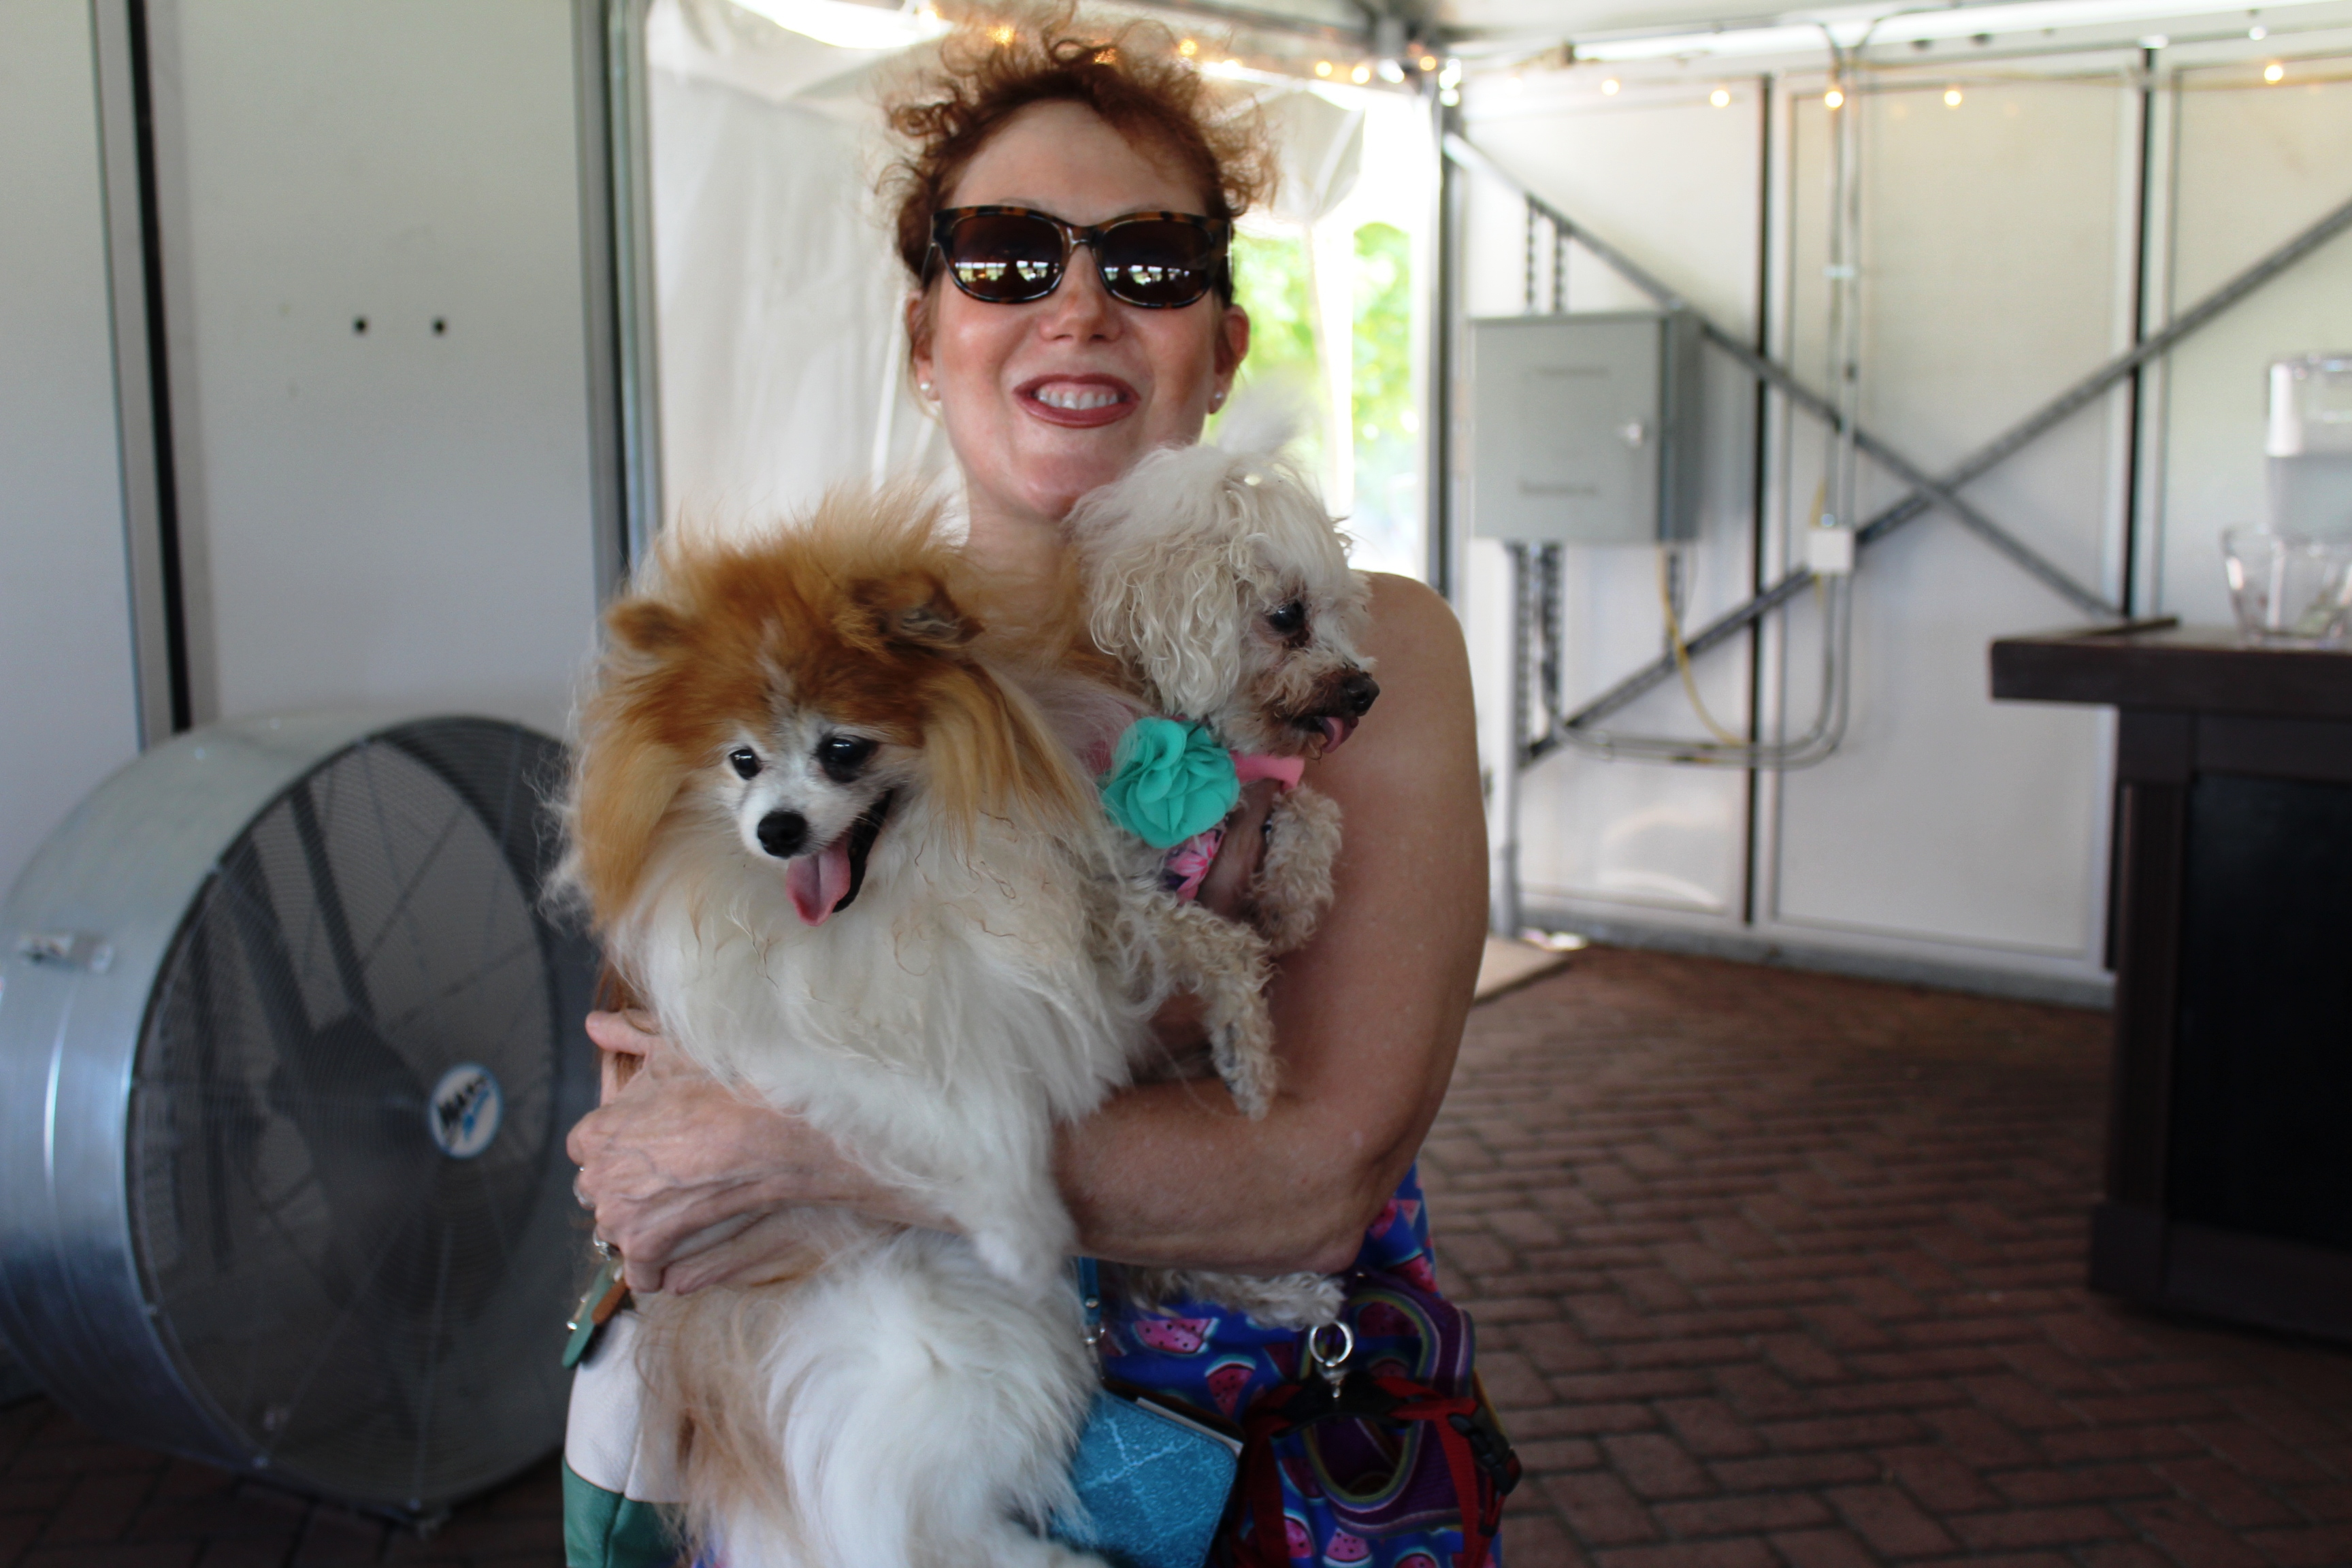 Woman smiling holding two small dogs at the Saratoga Dog & Pony Show to benefit AIM Services, Inc.